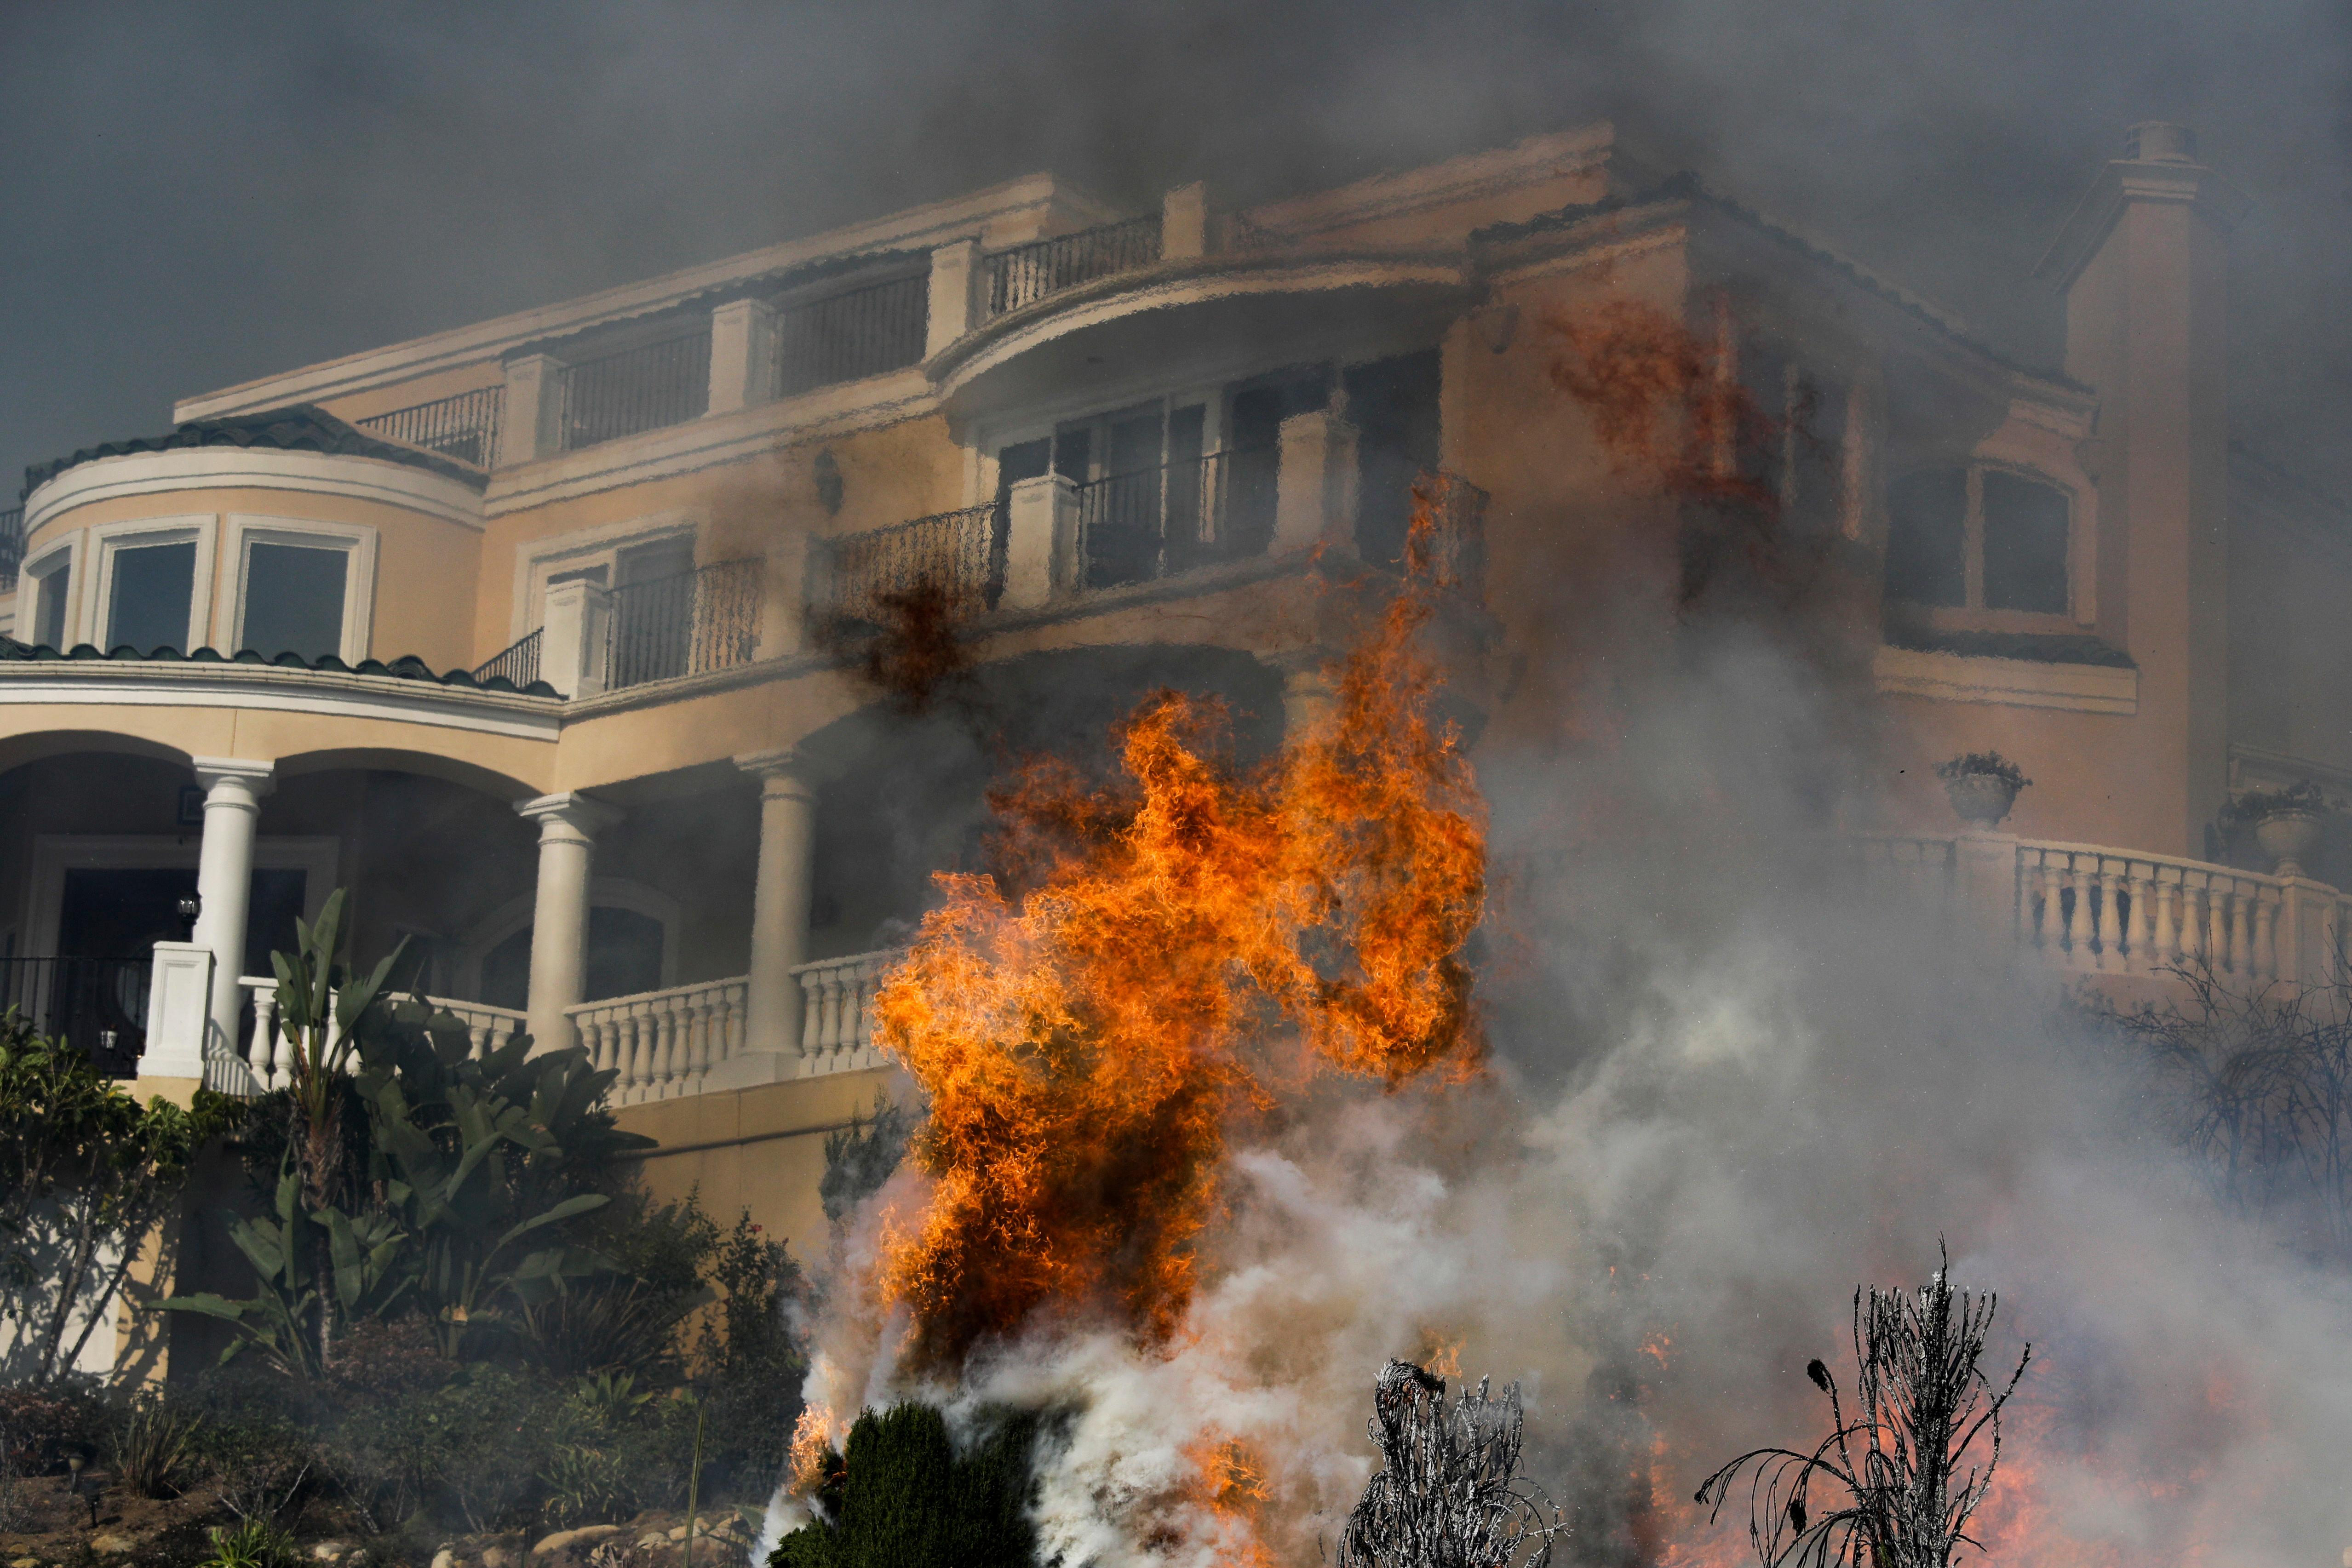 Flames rise near a home as a wildfire burns in Ventura, Calif., on Tuesday, Dec. 5, 2017. Ferocious winds in Southern California have whipped up explosive wildfires, burning a psychiatric hospital and scores of other structures. (AP Photo/Jae Hong)